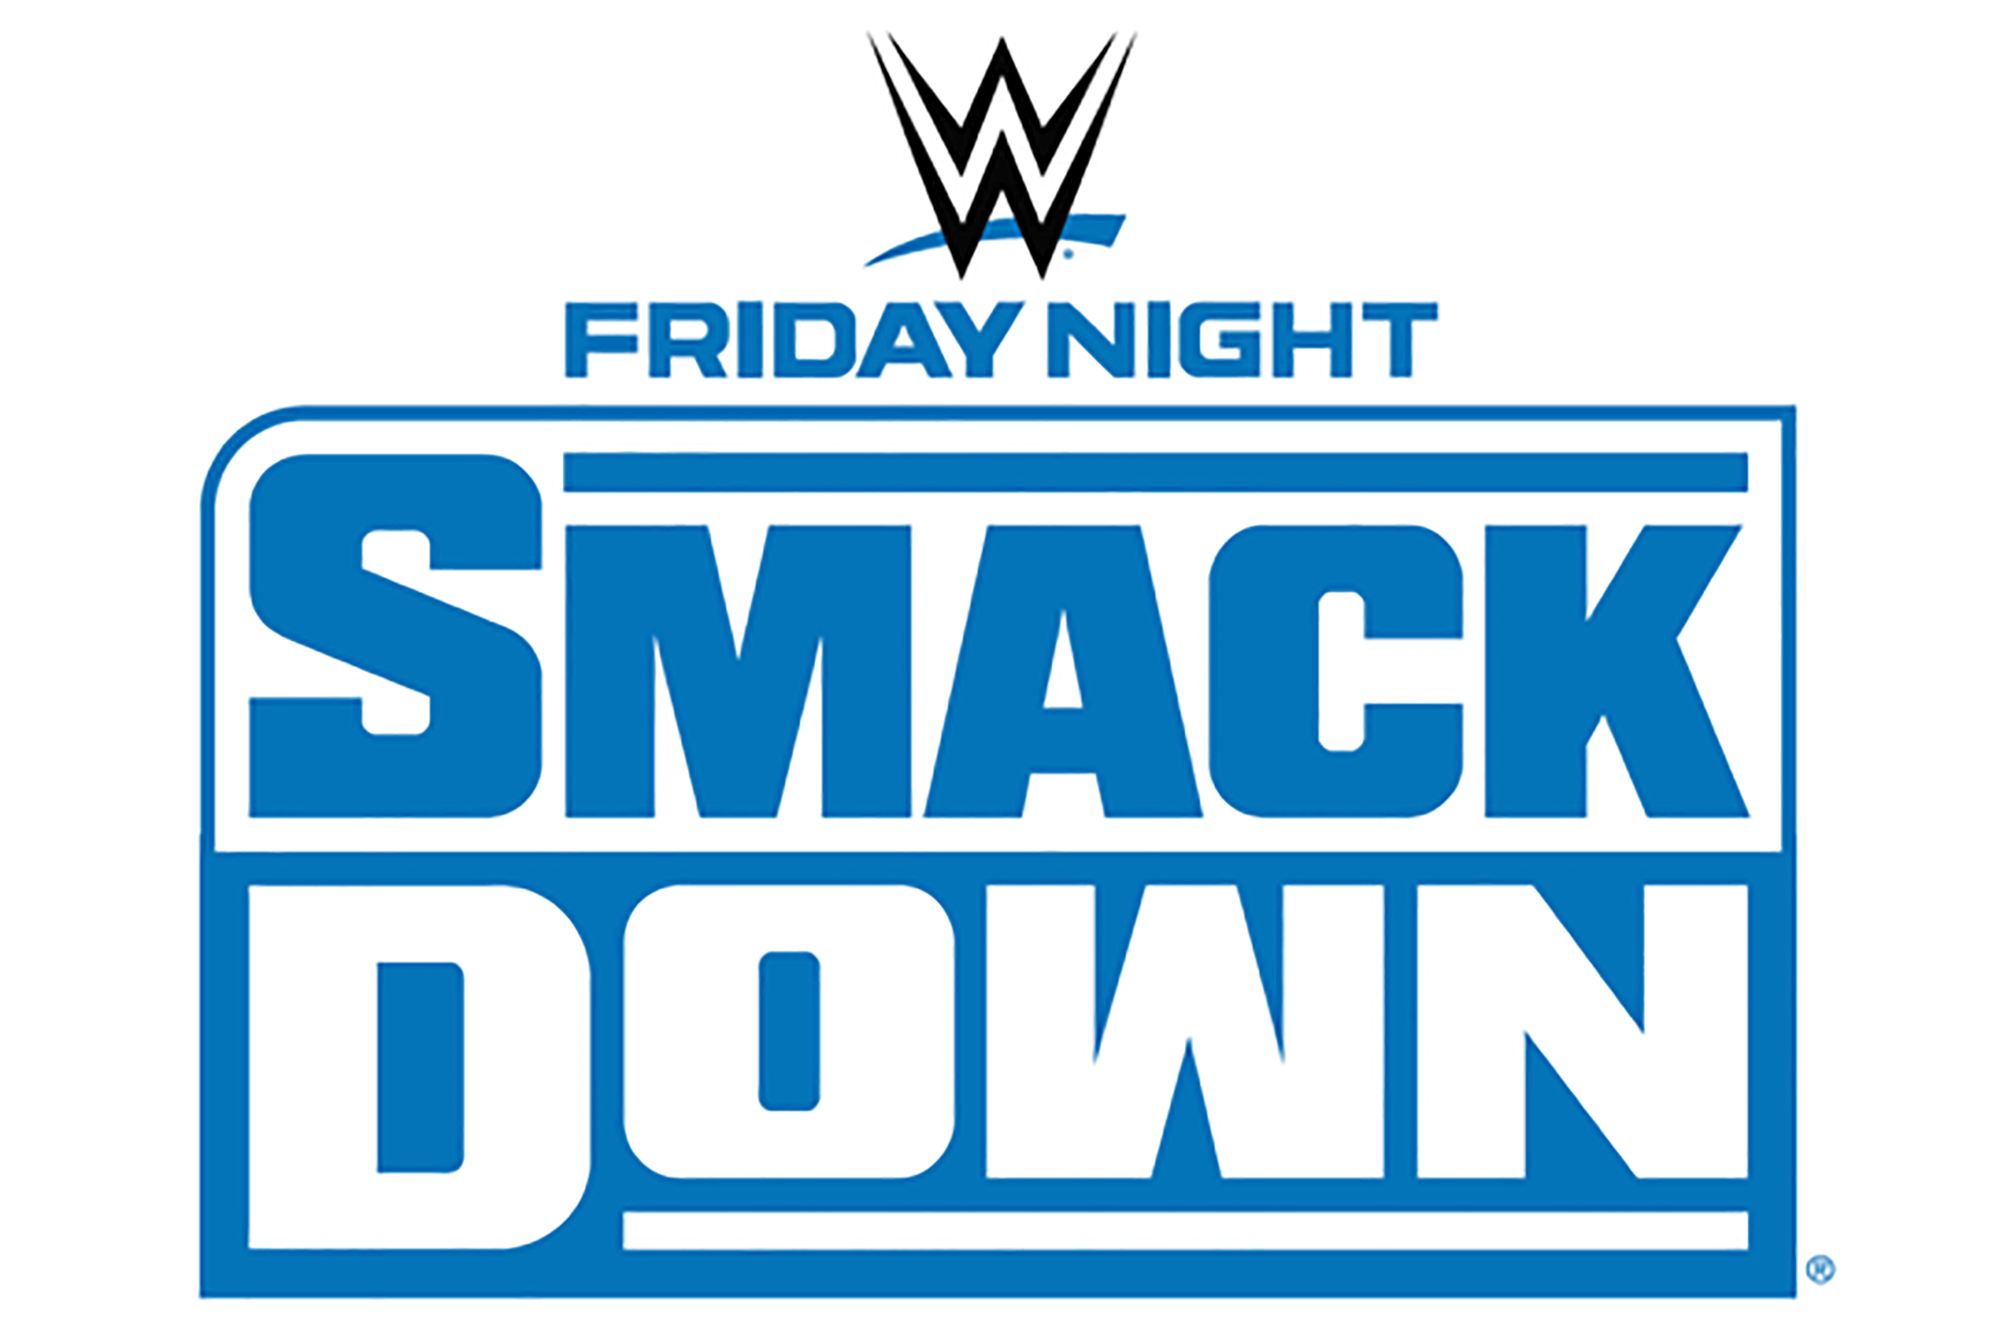 Pin By Luiskrlos Tulcan Gamboa On Wwe Smackdown Friday Night Wwe Friday Tv